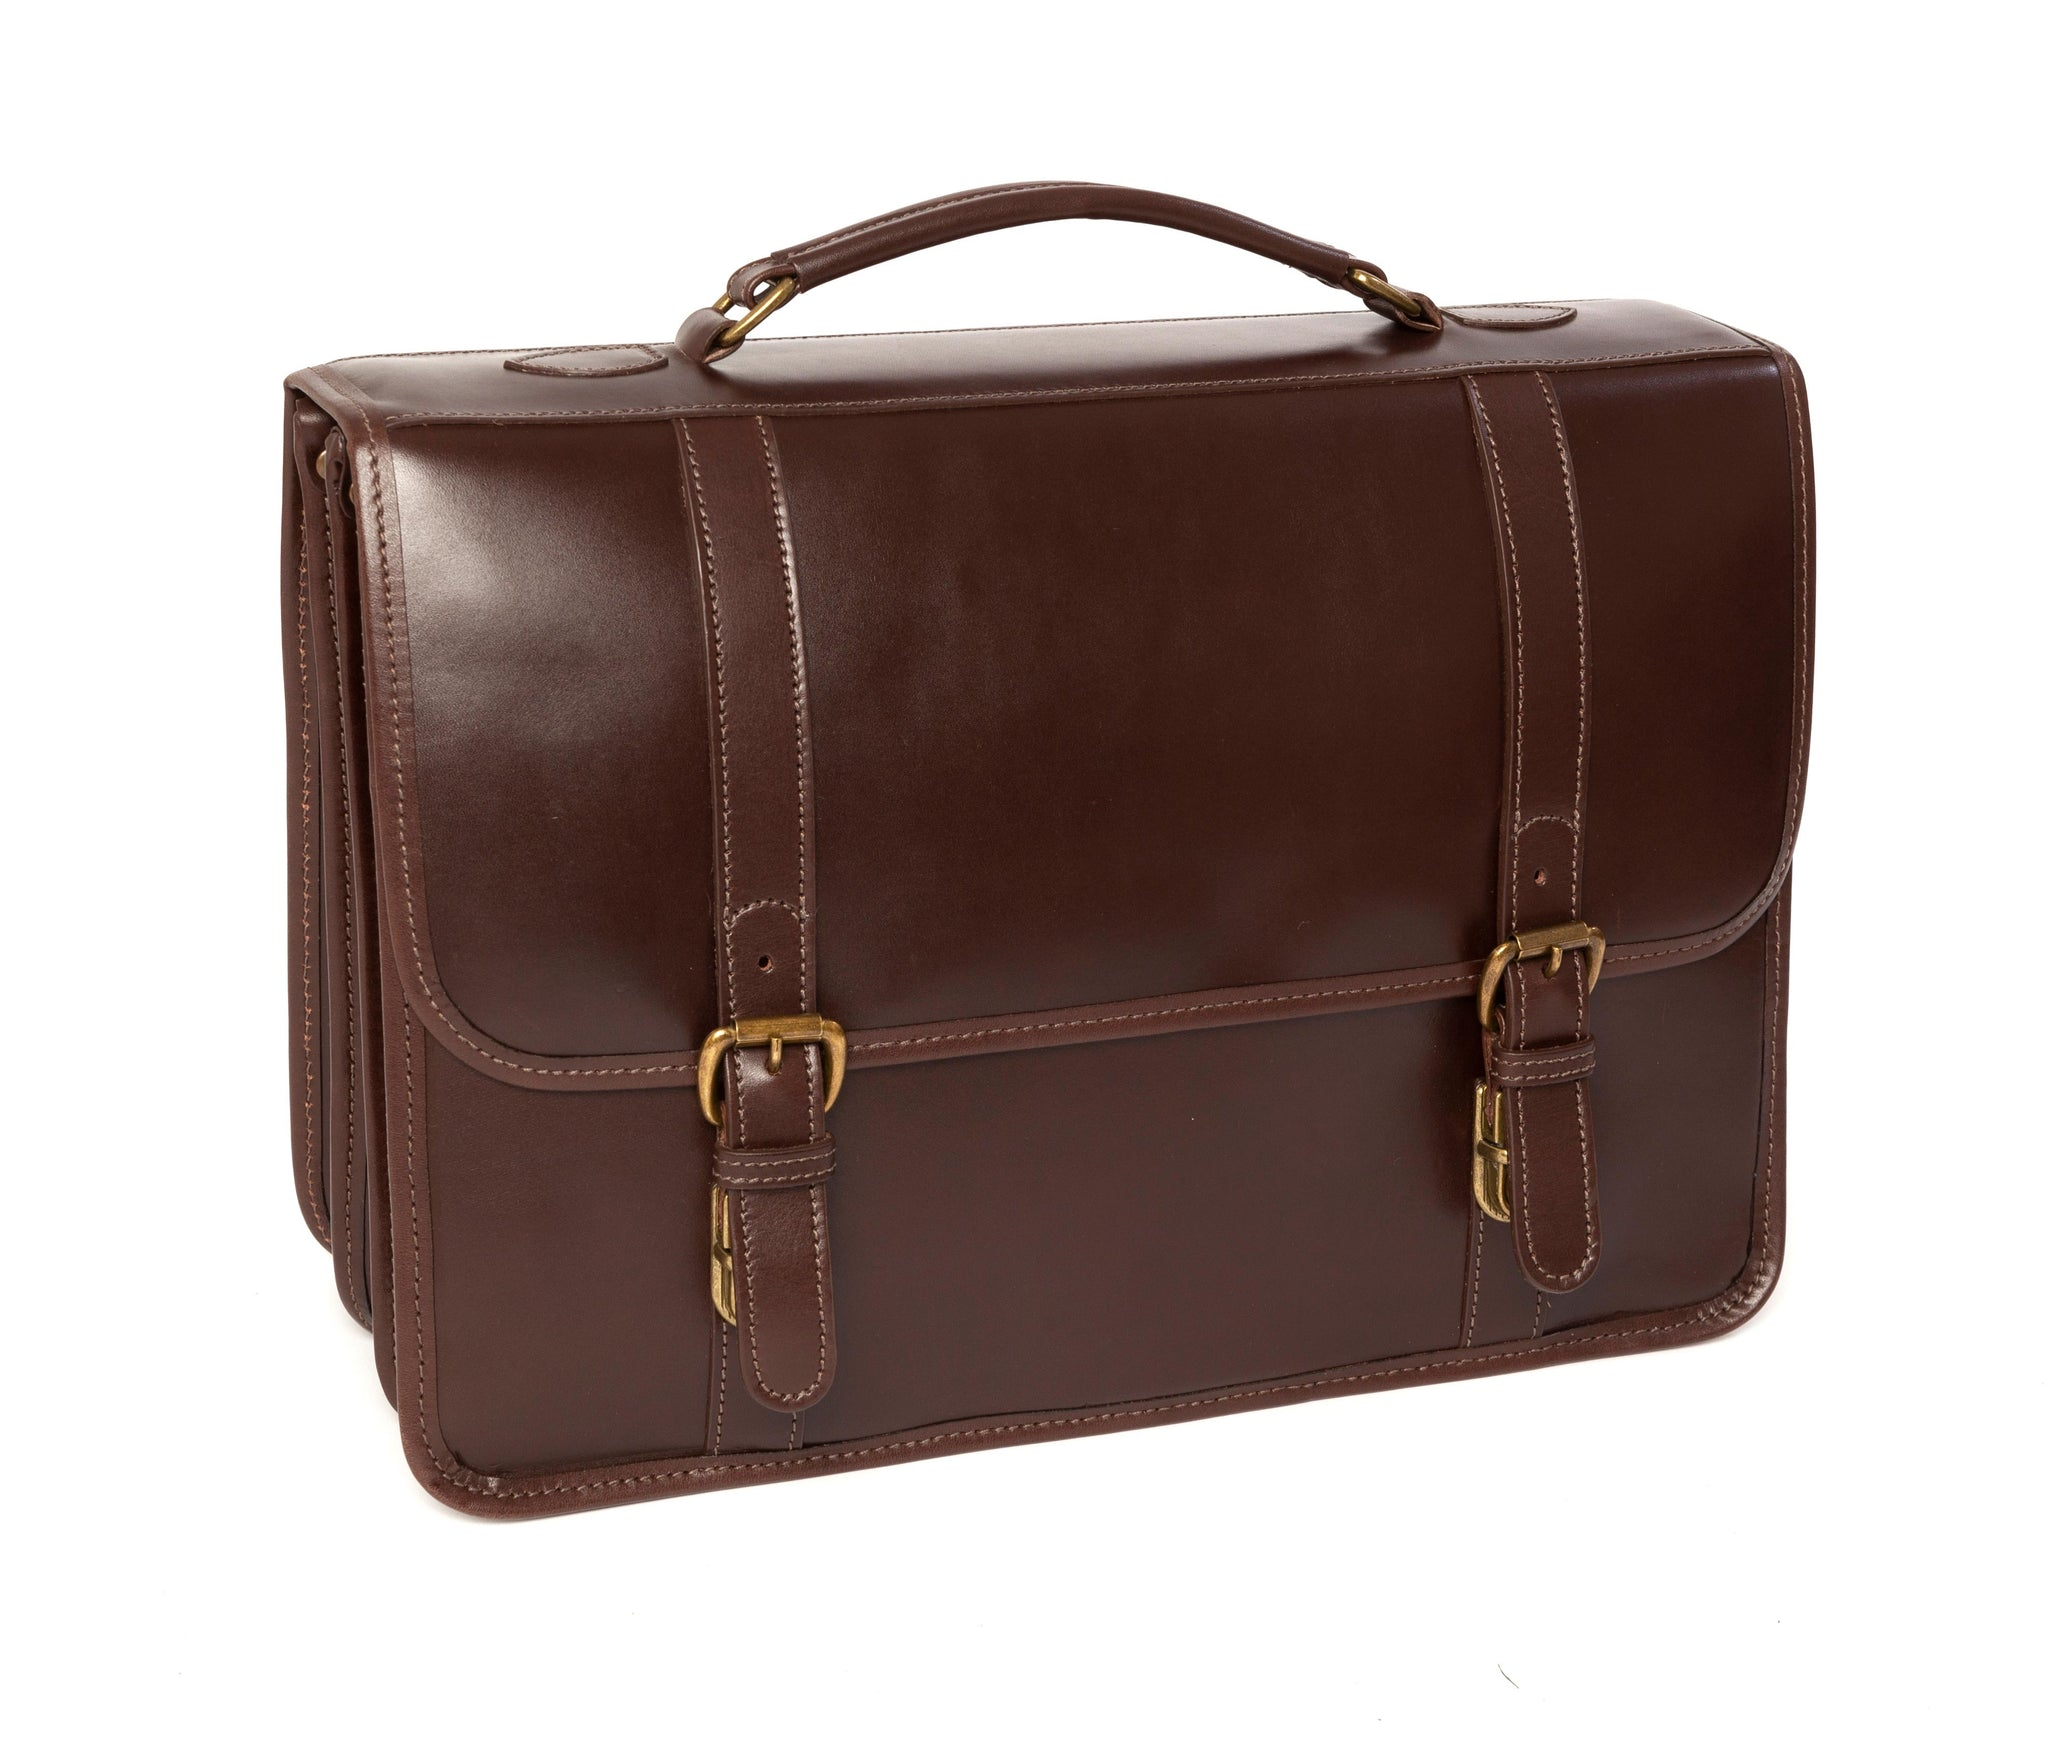 Tusting Buckingham Leather 3-Bellows Briefcase - Dark Brown Miret Bridle - Regent Tailoring